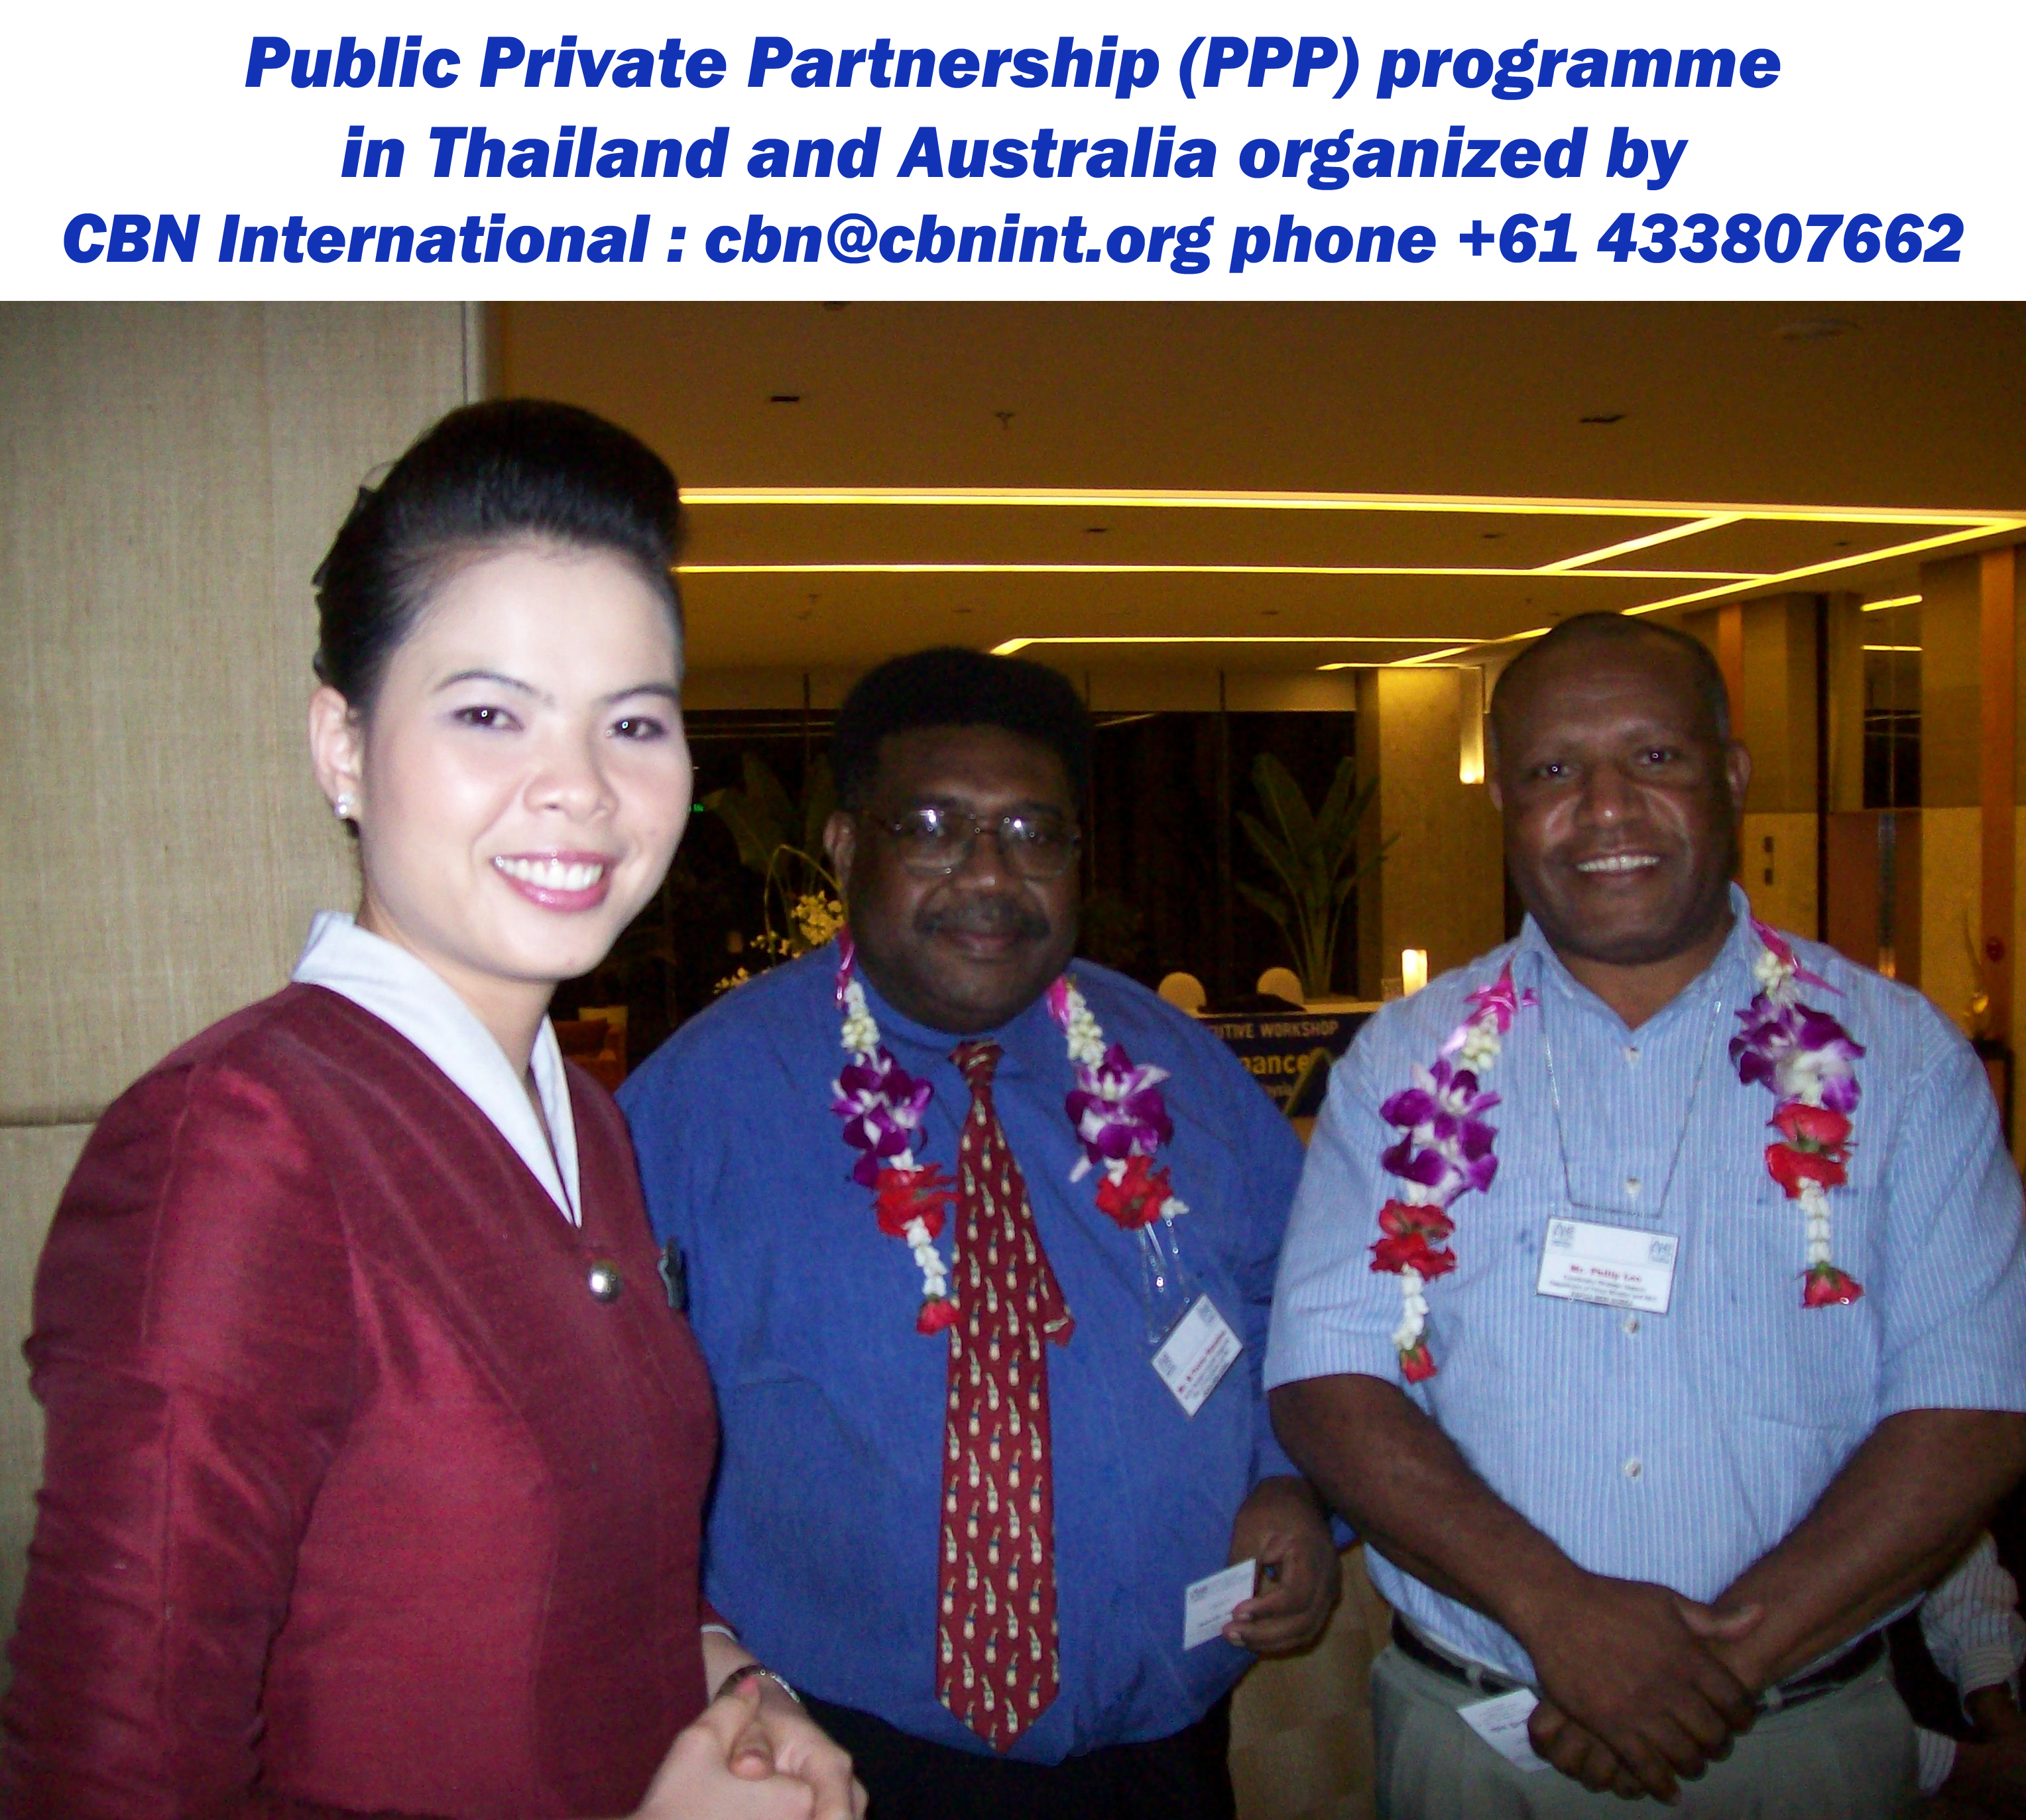 Mr. Michael Trevor Nunulrea and Mr. Philip Leo, distinguished participants from Department of Prime Minister & NEC, Papua New Guinea being welcomed upon arrival during a CBN international training and study tour workshop held in Thailand; short course on Good Governance series.